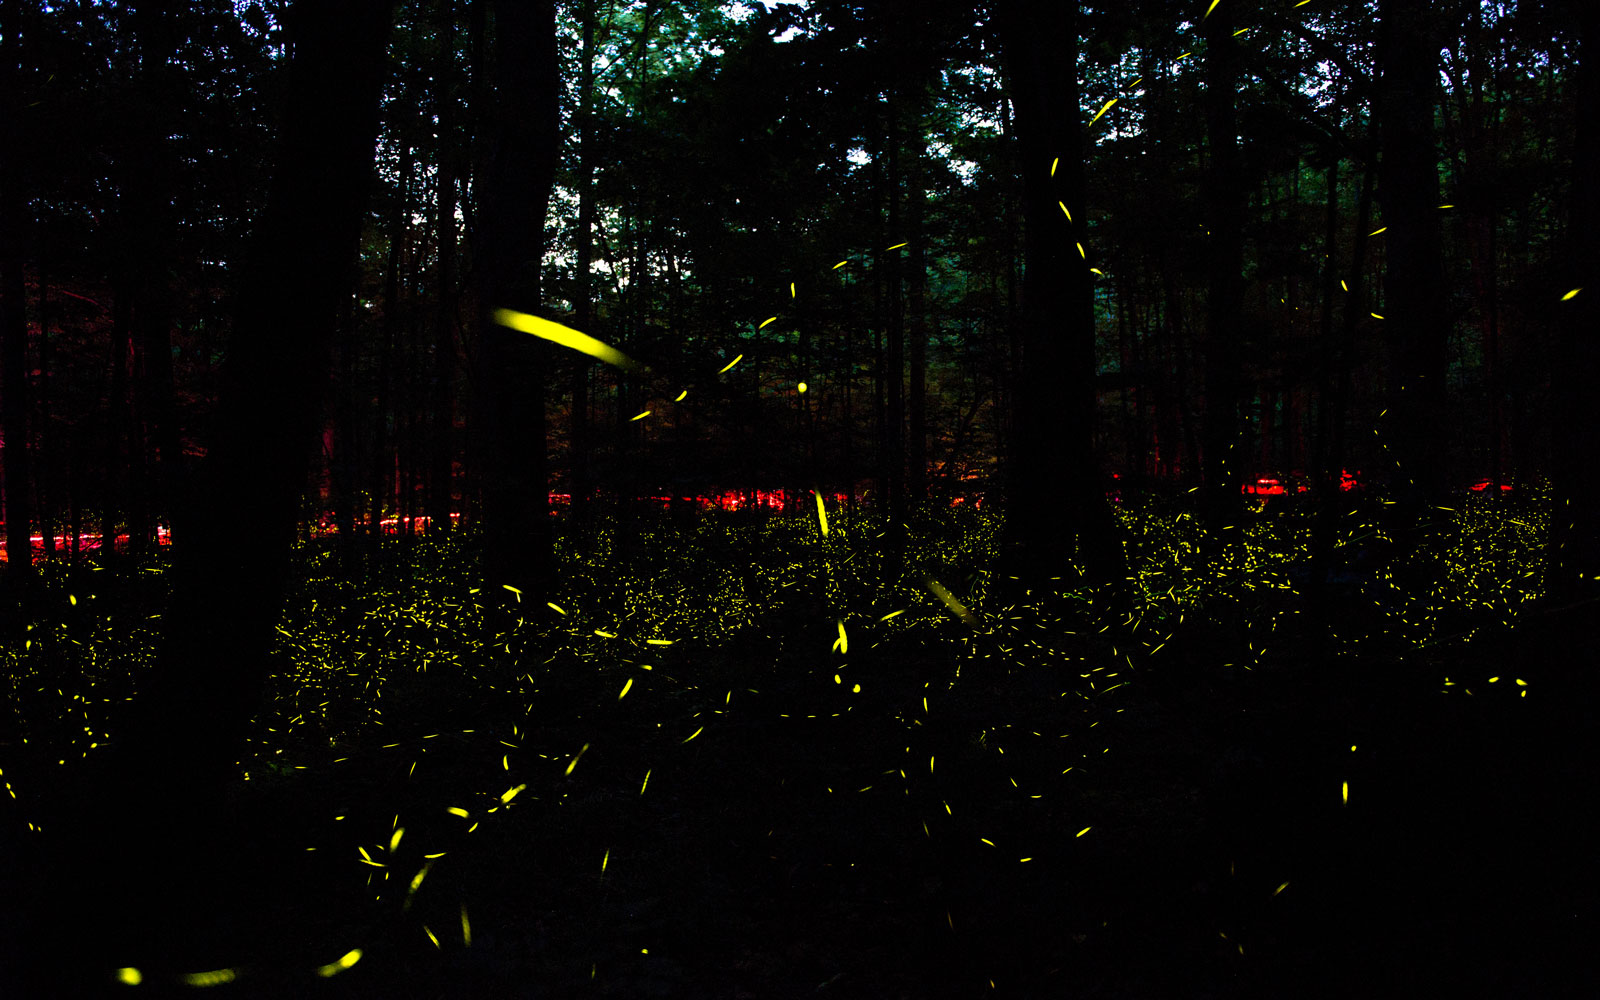 Don't Miss Thousands of Fireflies Lighting Up the Great Smoky Mountains